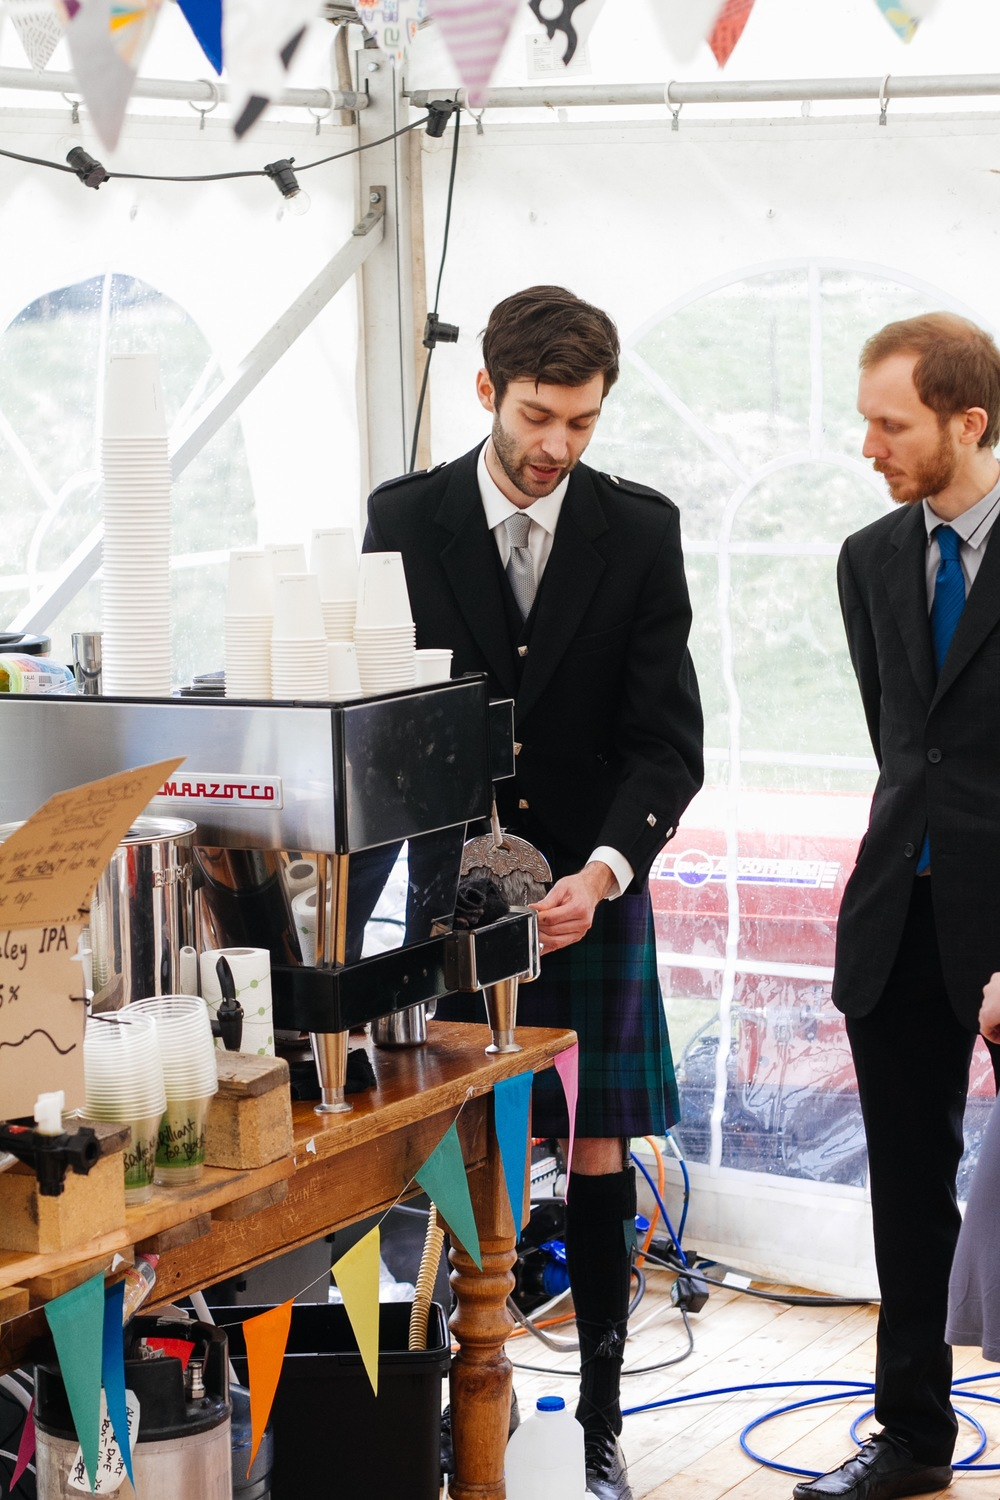 Brew Lab | Events   Pop-up coffee for conferences, celebrations and festivals.